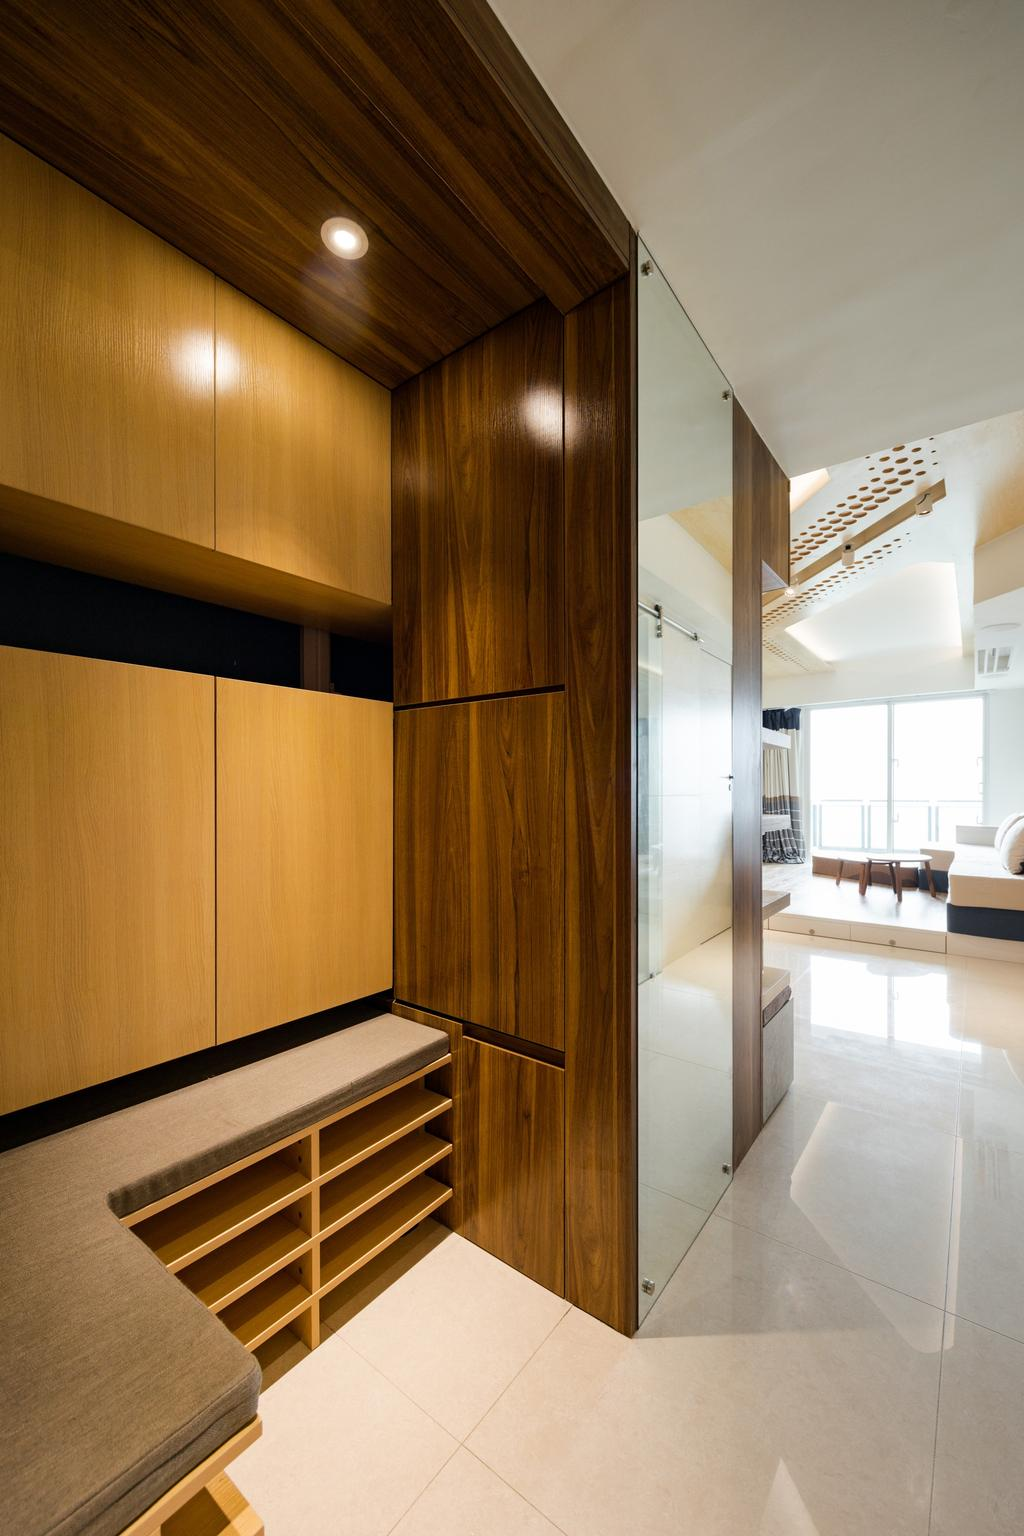 摩登, 私家樓, 客廳, 緻藍天, 室內設計師, MNOP Design, 當代, Indoors, Interior Design, Closet, Cupboard, Furniture